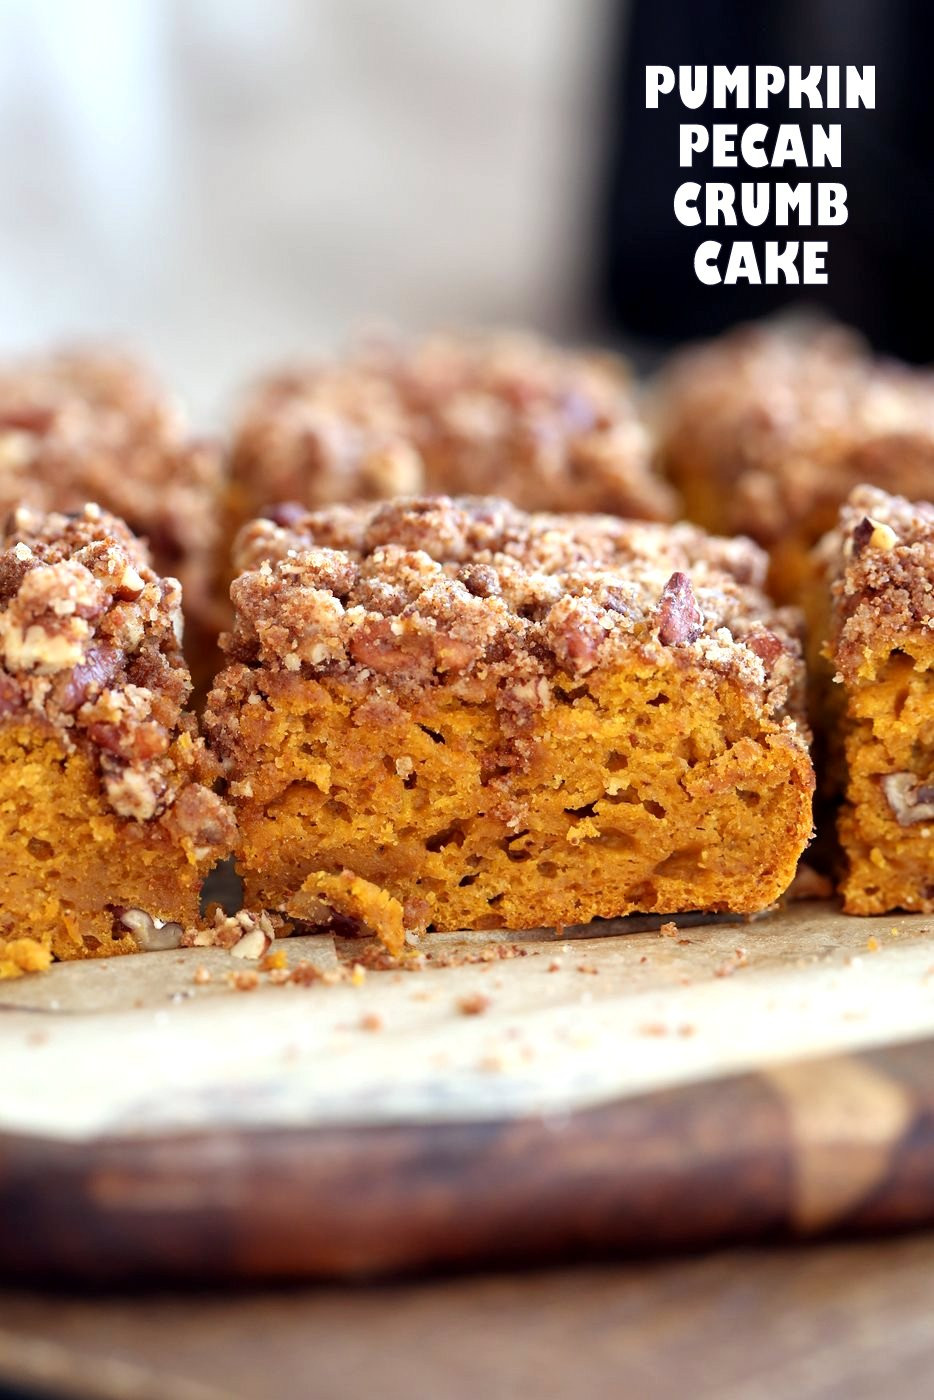 Pumpkin Recipes Vegan  Vegan Pumpkin Coffee Cake with Pecan Crumb Vegan Richa